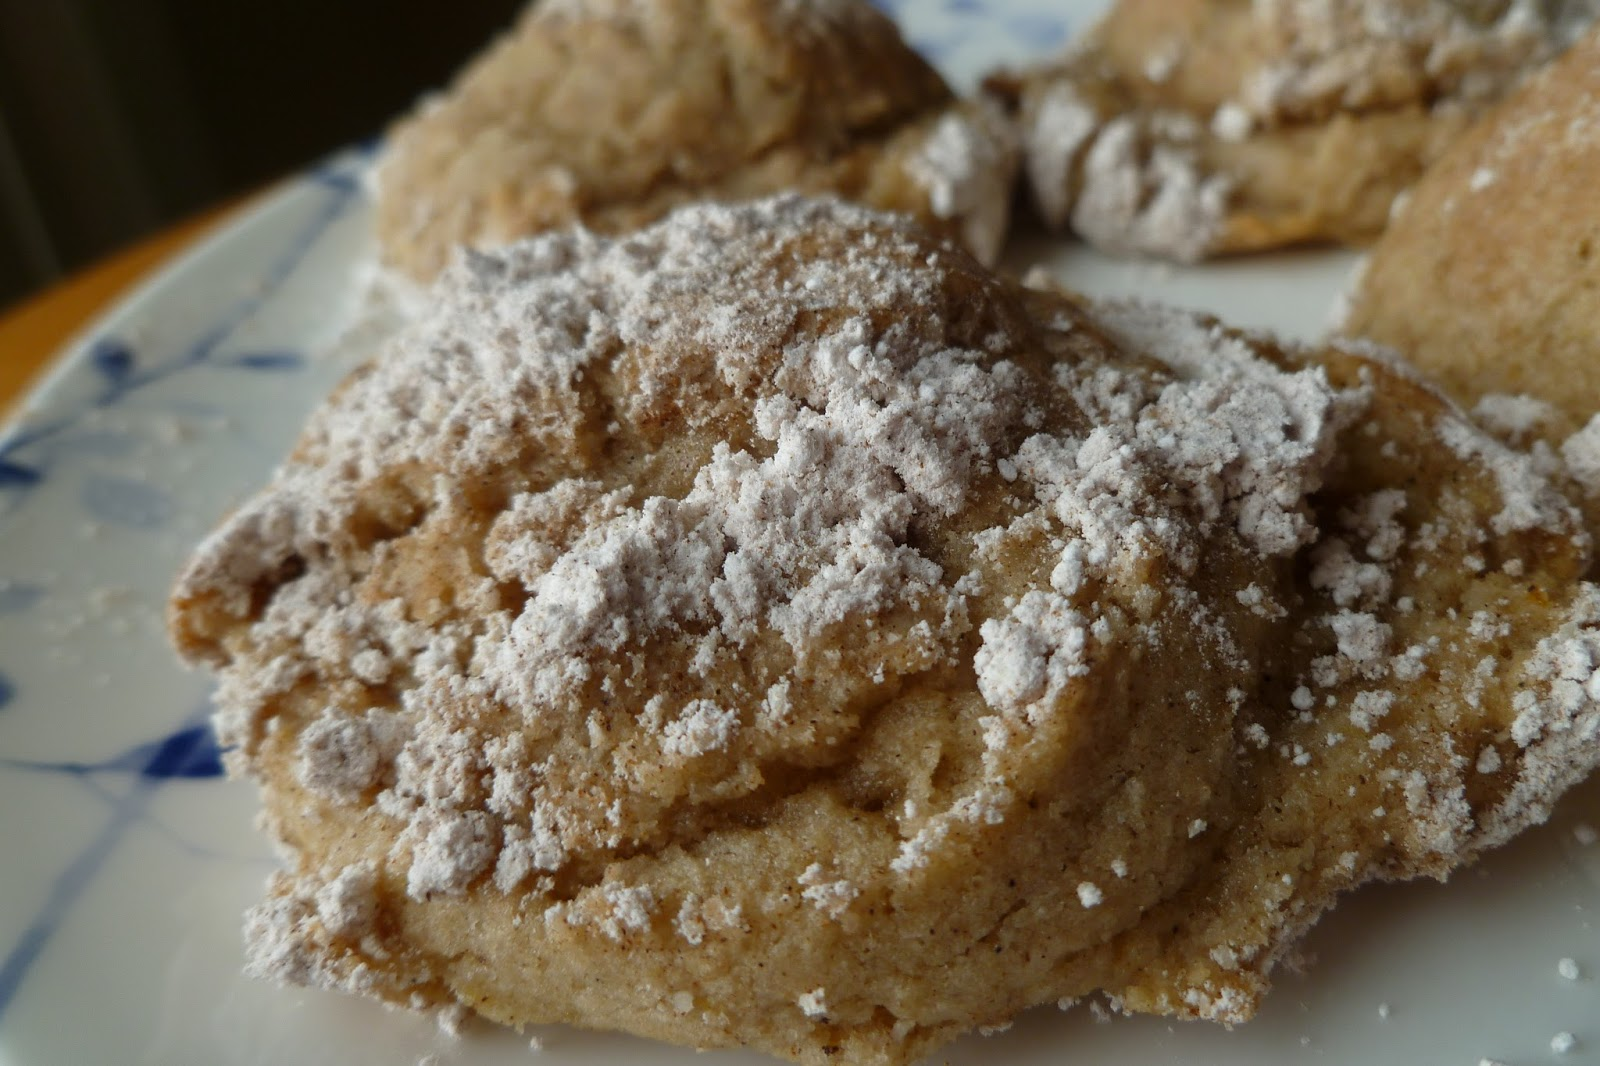 The Pastry Chef's Baking: Brown Butter Cinnamon Crinkles